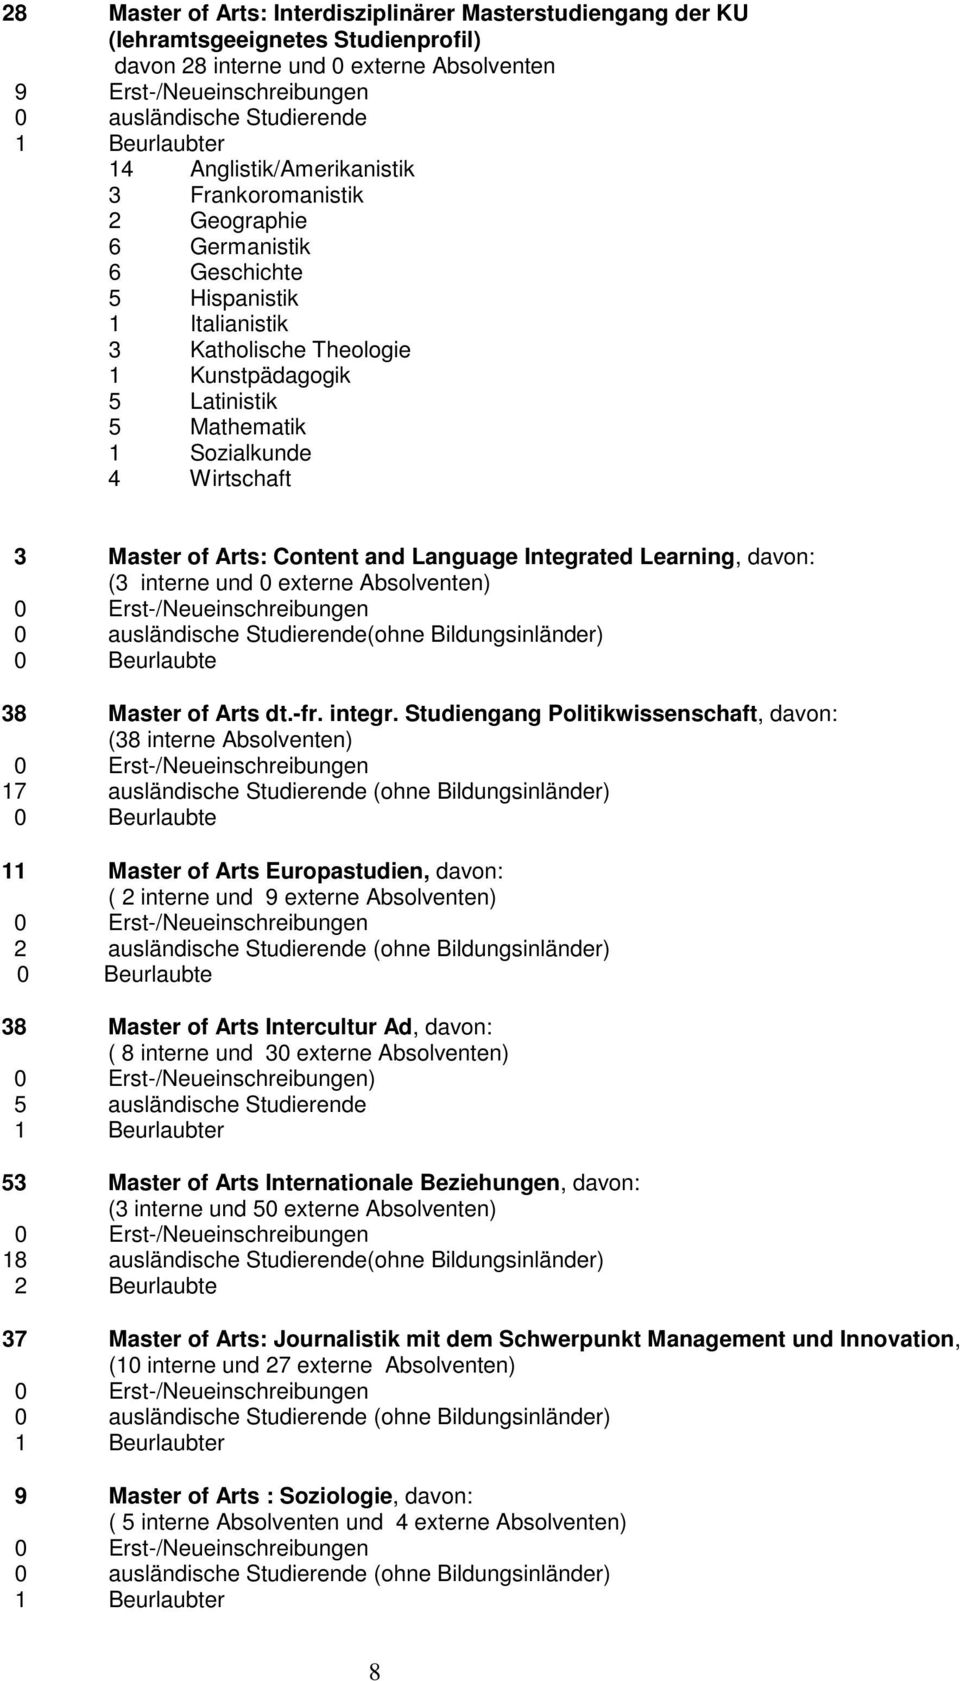 Content and Language Integrated Learning, davon: (3 interne und 0 externe Absolventen) (ohne Bildungsinländer) 38 Master of Arts dt.-fr. integr.